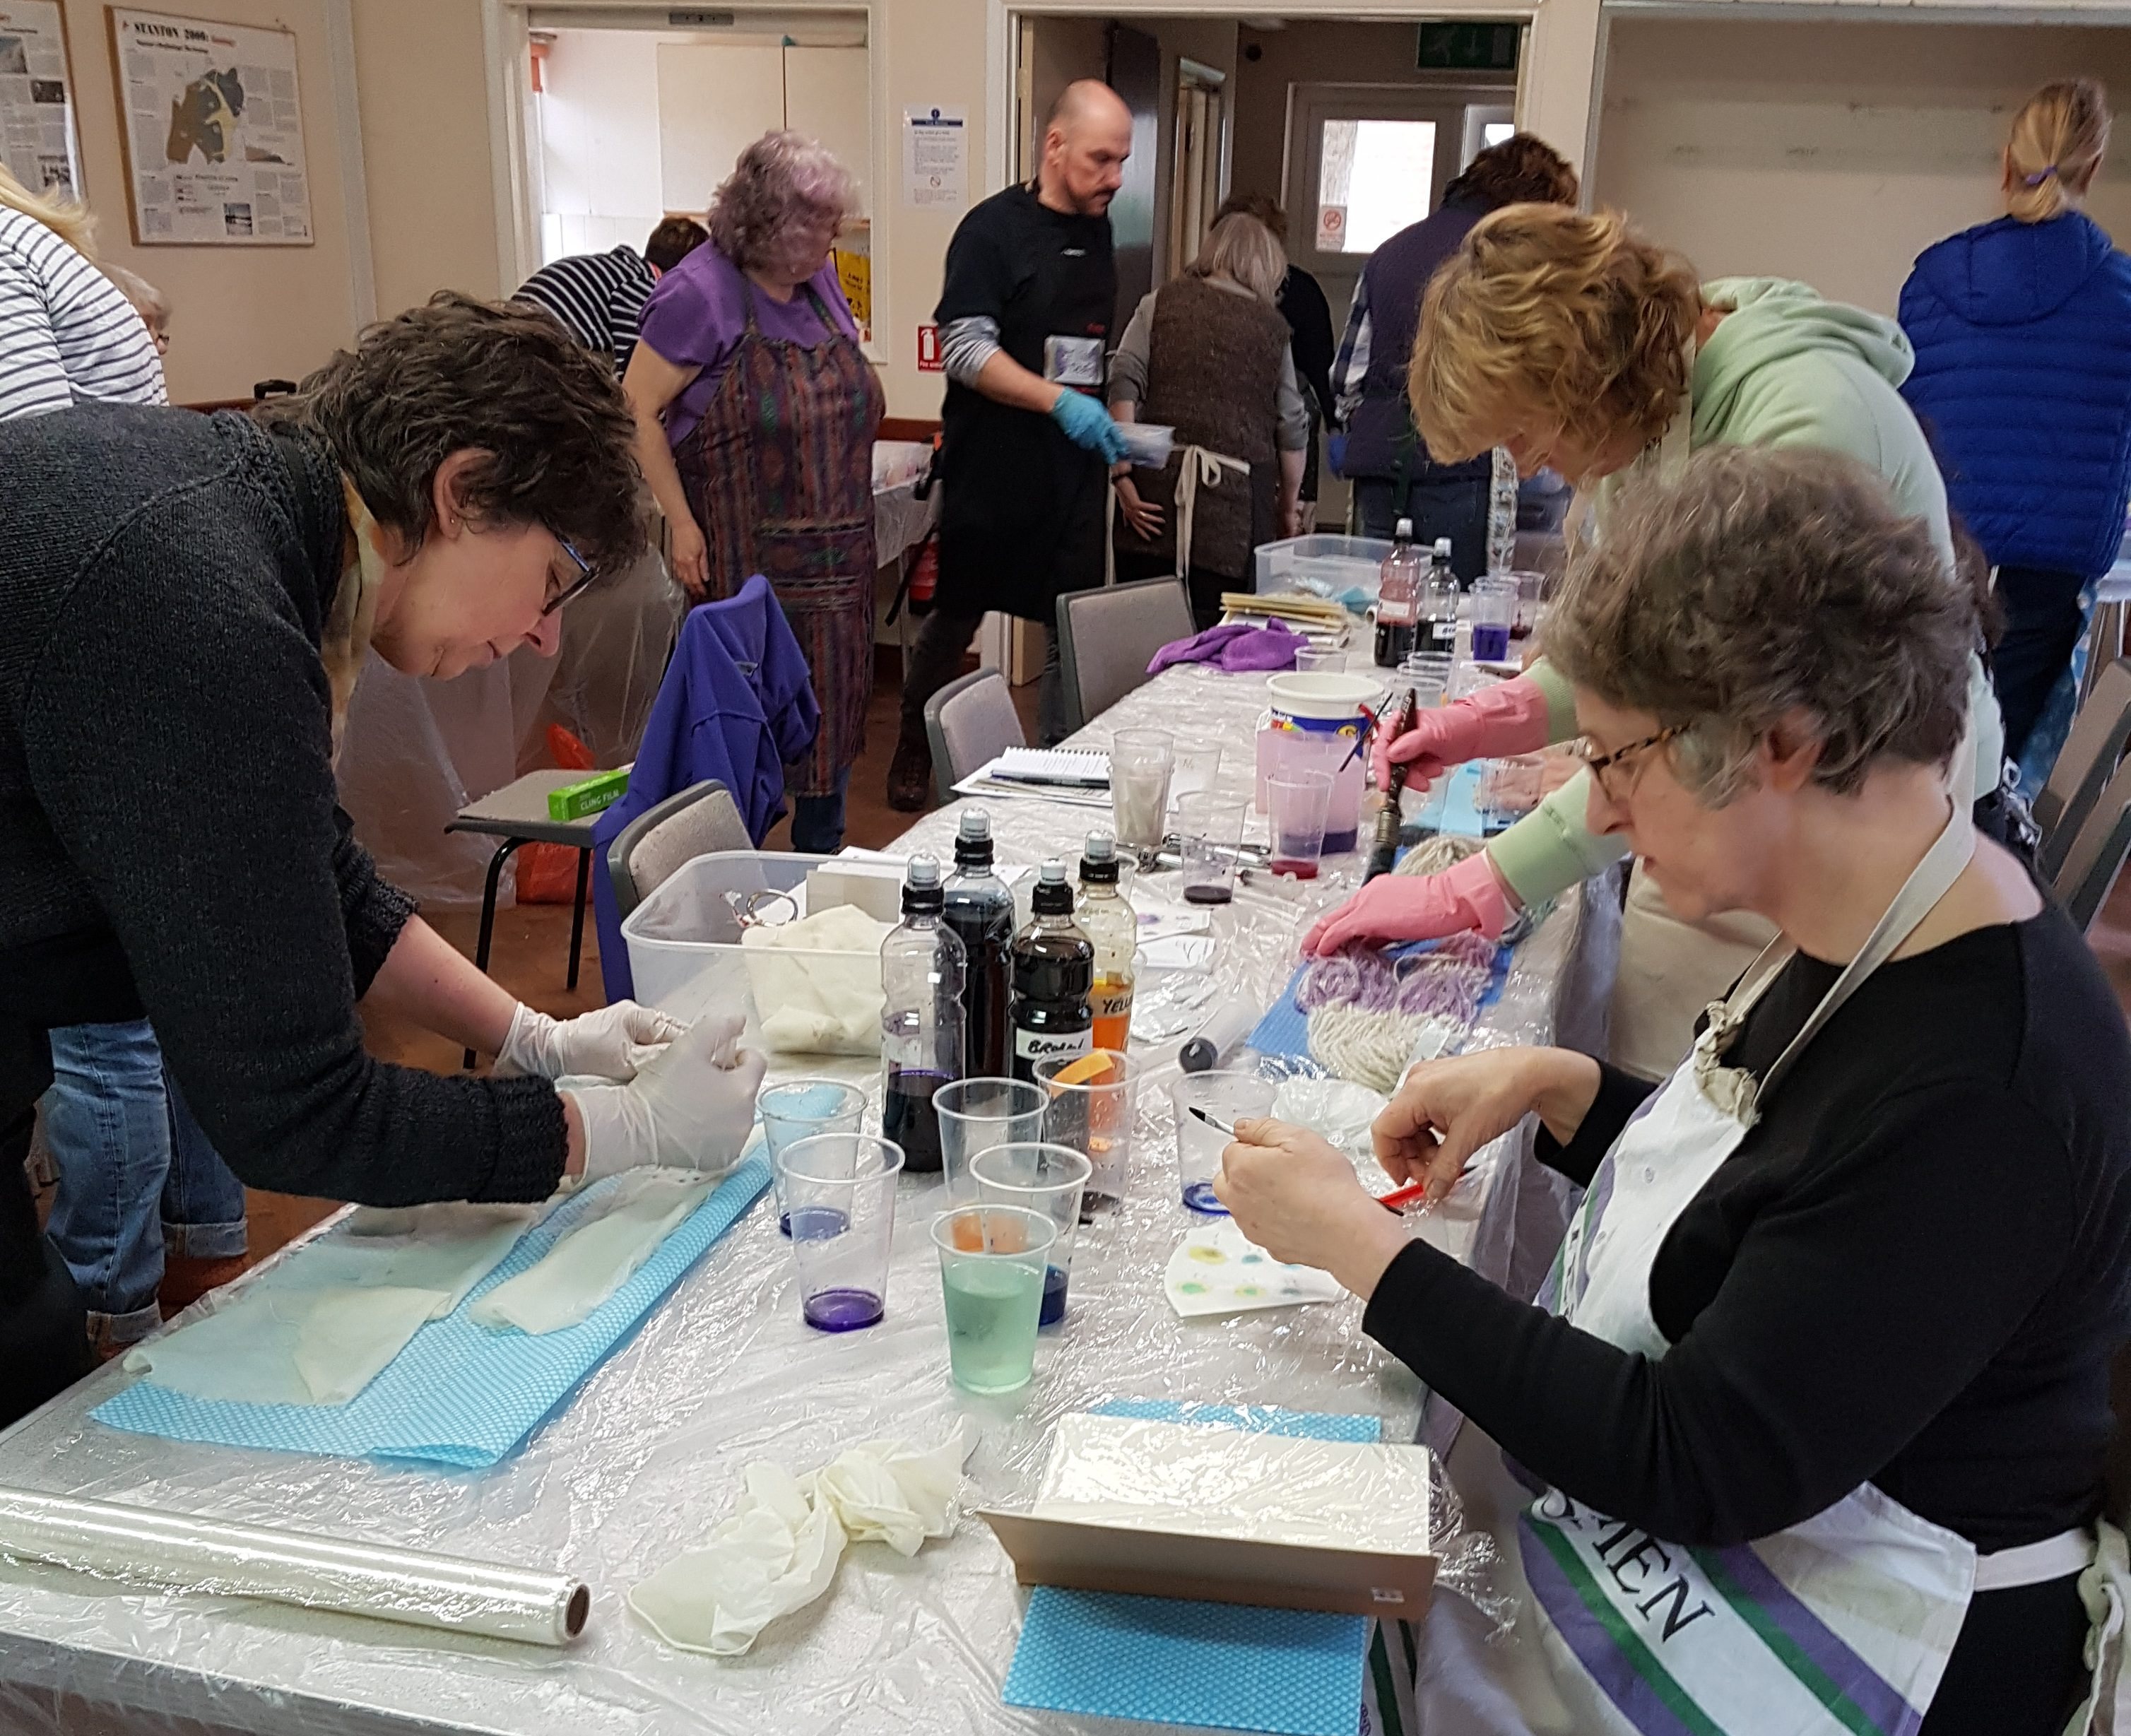 Oxford Guild of Weavers, Spinners and Dyers - Introduction to dyeing with synthetic acid dyes with Debbie Tomkies of DT Craft and Design